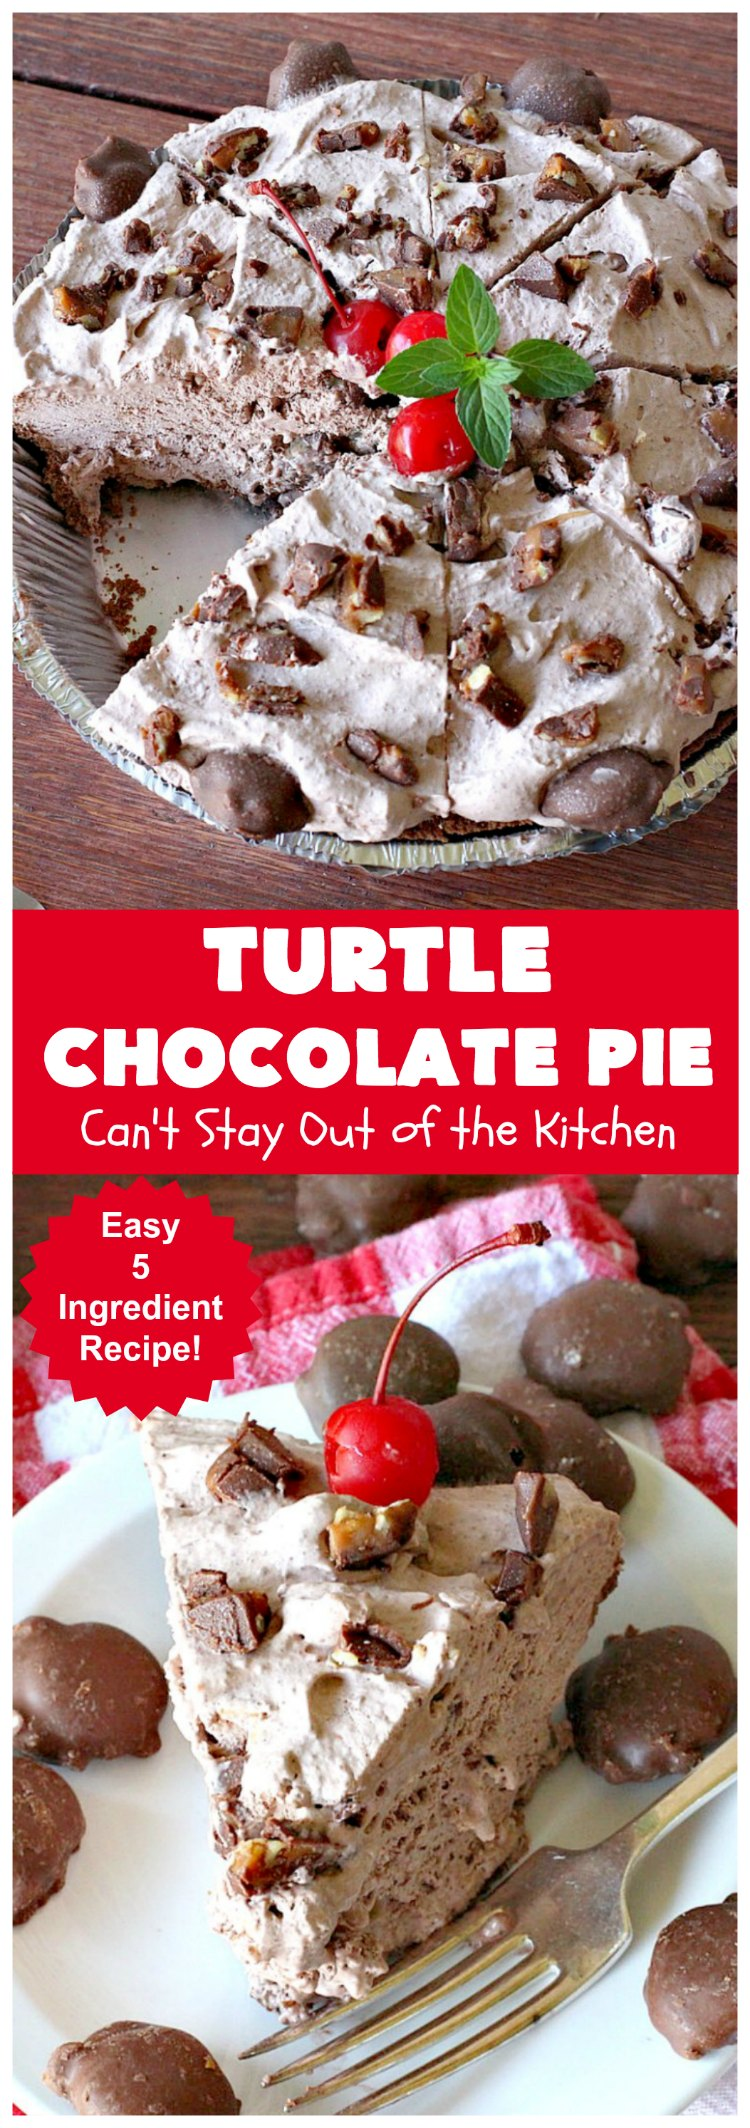 Turtle Chocolate Pie | Can't Stay Out of the Kitchen | this fantastic 5 ingredient #pie is made with #TurtlesCandies! It's outrageously delicious & so perfect for company or #holiday dinners. #chocolate #holiday #ChocolatePie #dessert #ChocolateDessert #HolidayDessert #5IngredientRecipe #TurtleCandy #TurtleChocolatePie #caramel #pecans